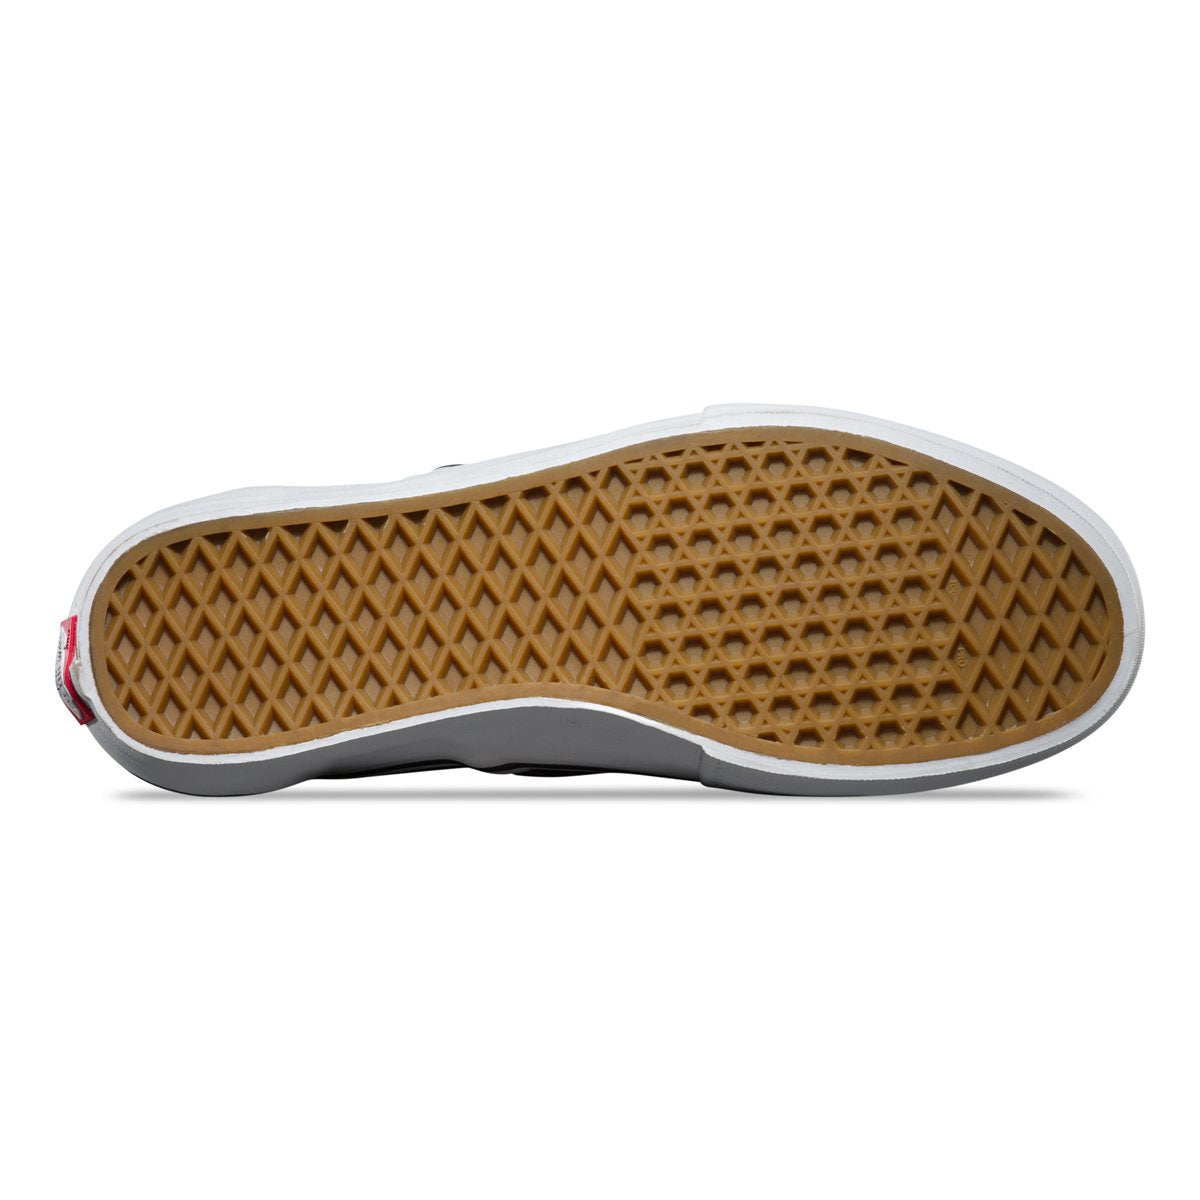 Zapatillas Vans Slip-On Pro - Black/White/Gum - Vans